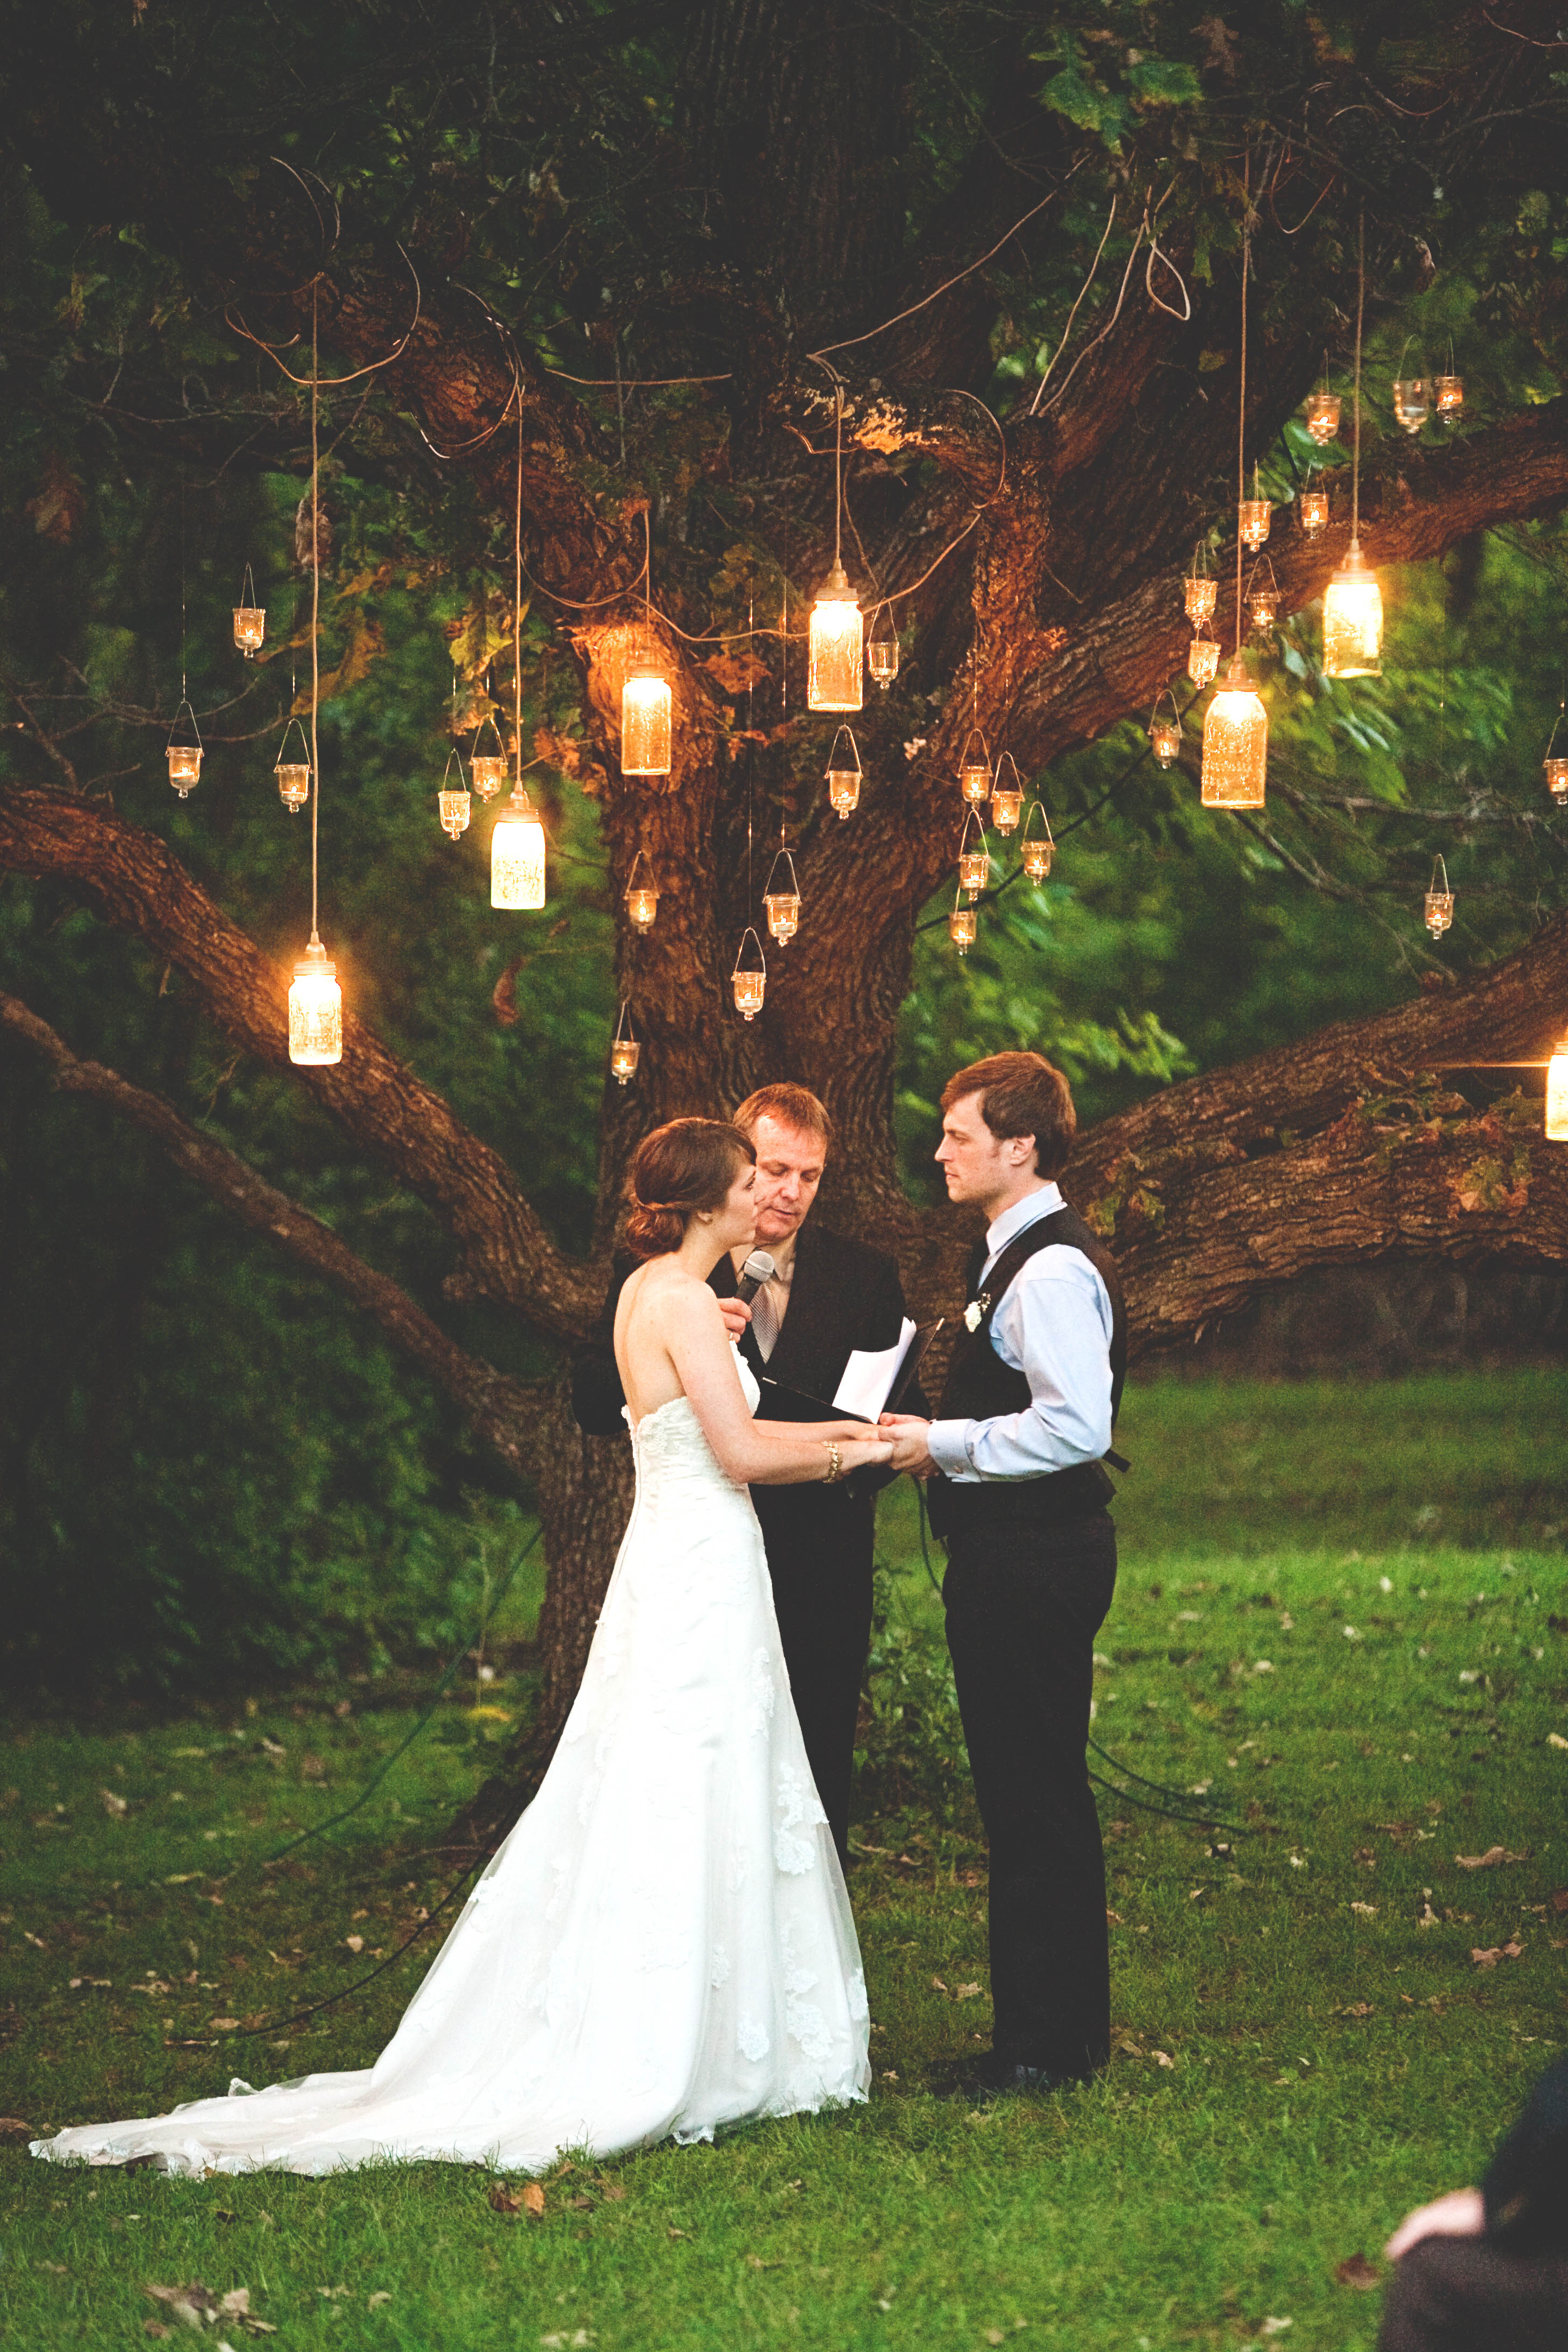 mason jar lighting hanging from tree over couple